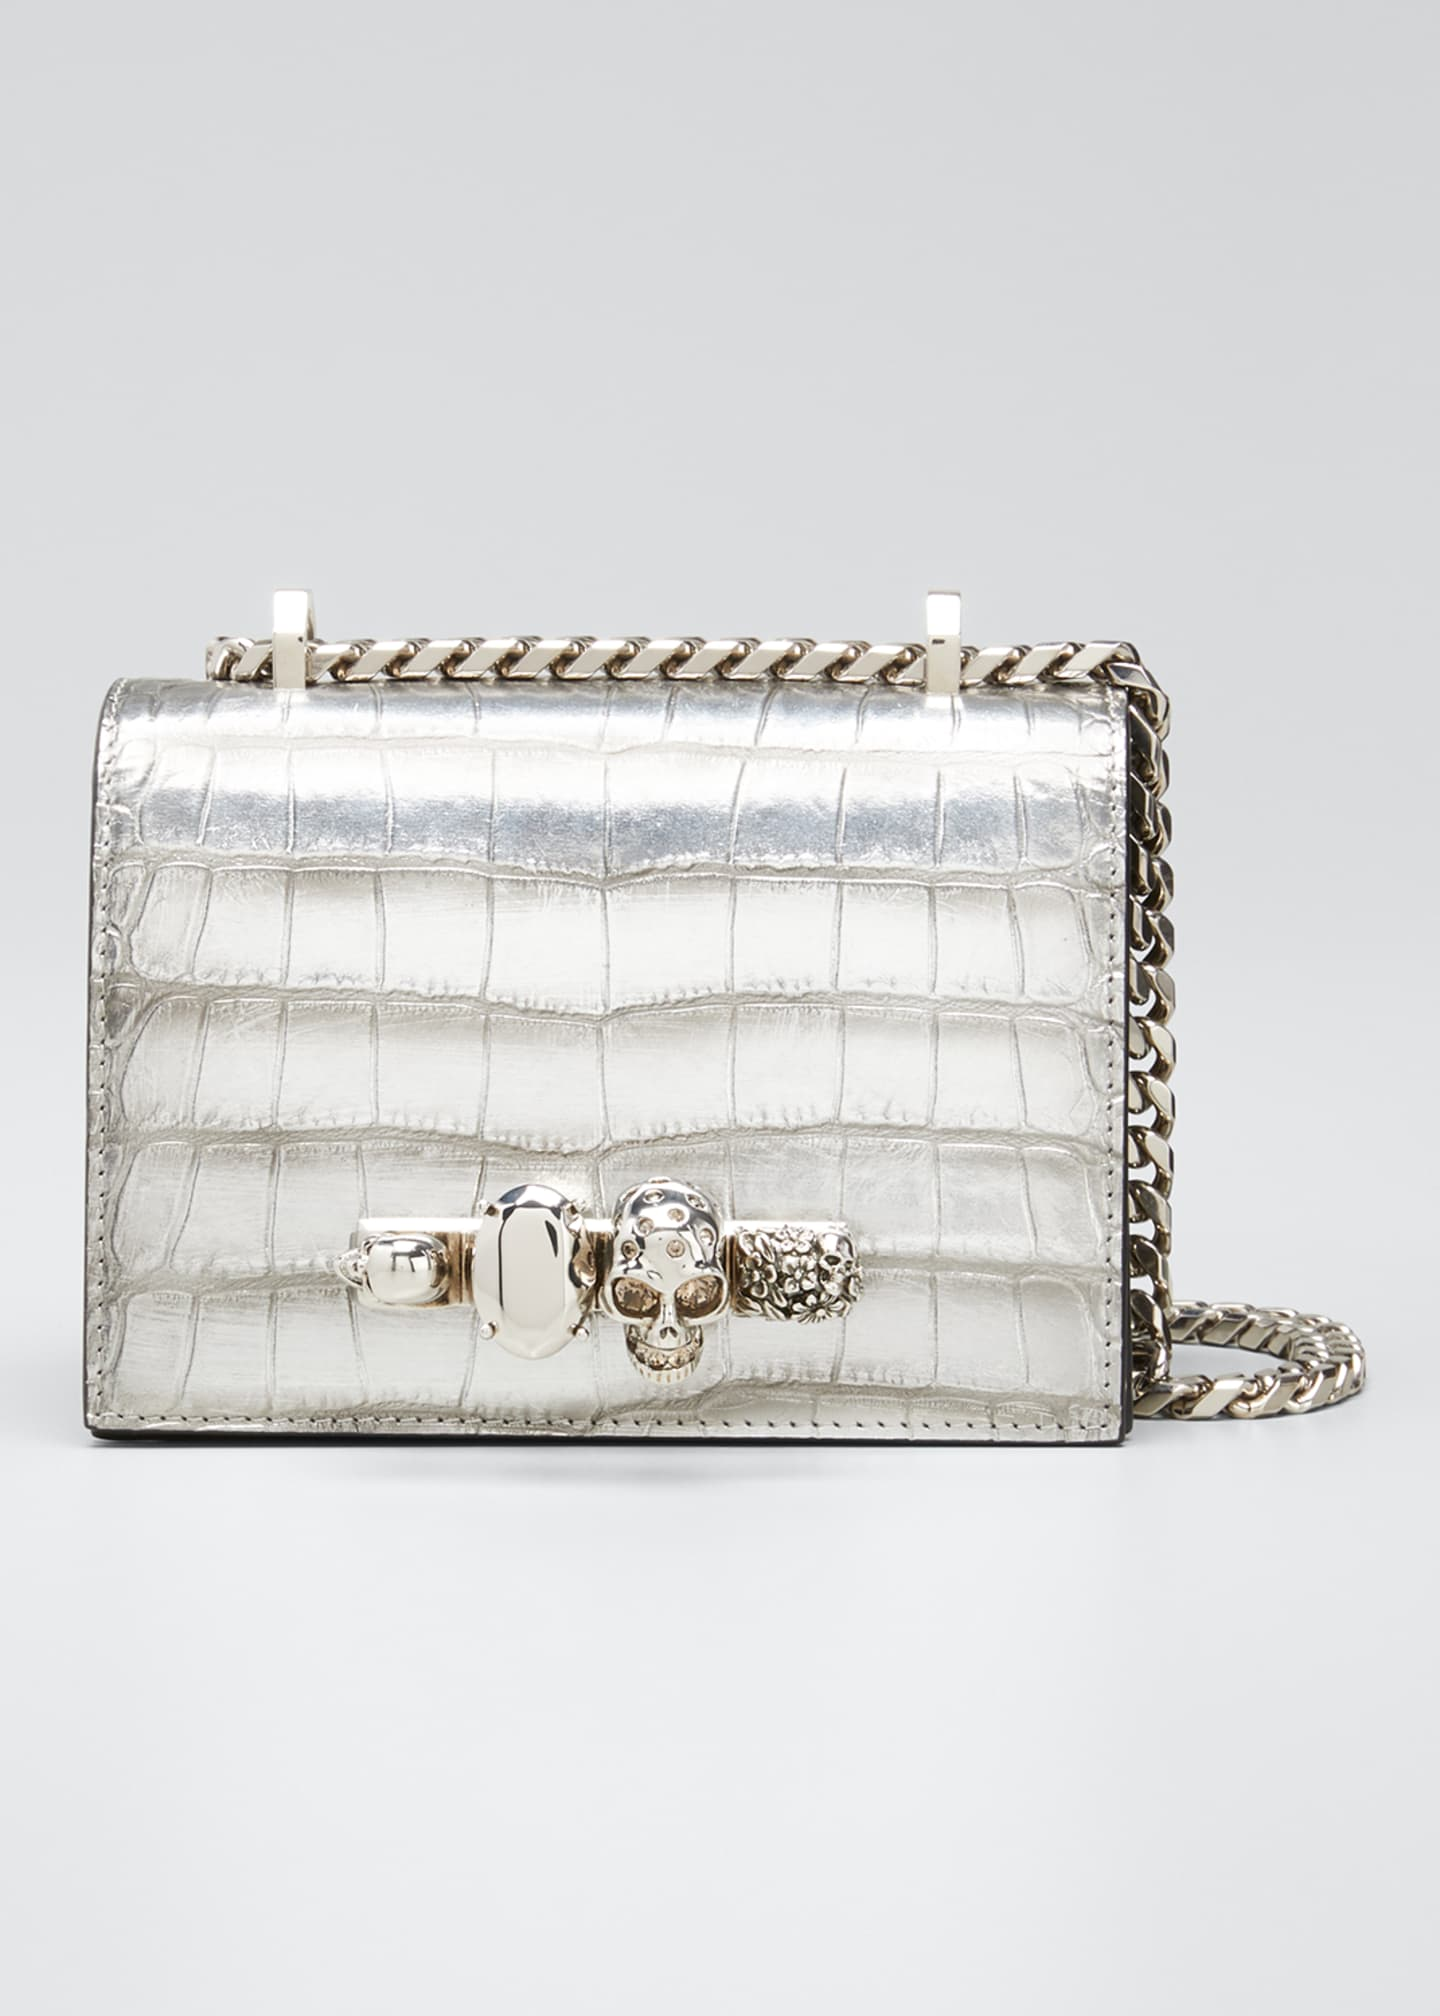 Alexander McQueen Small Jeweled Croc-Embossed Shoulder Bag